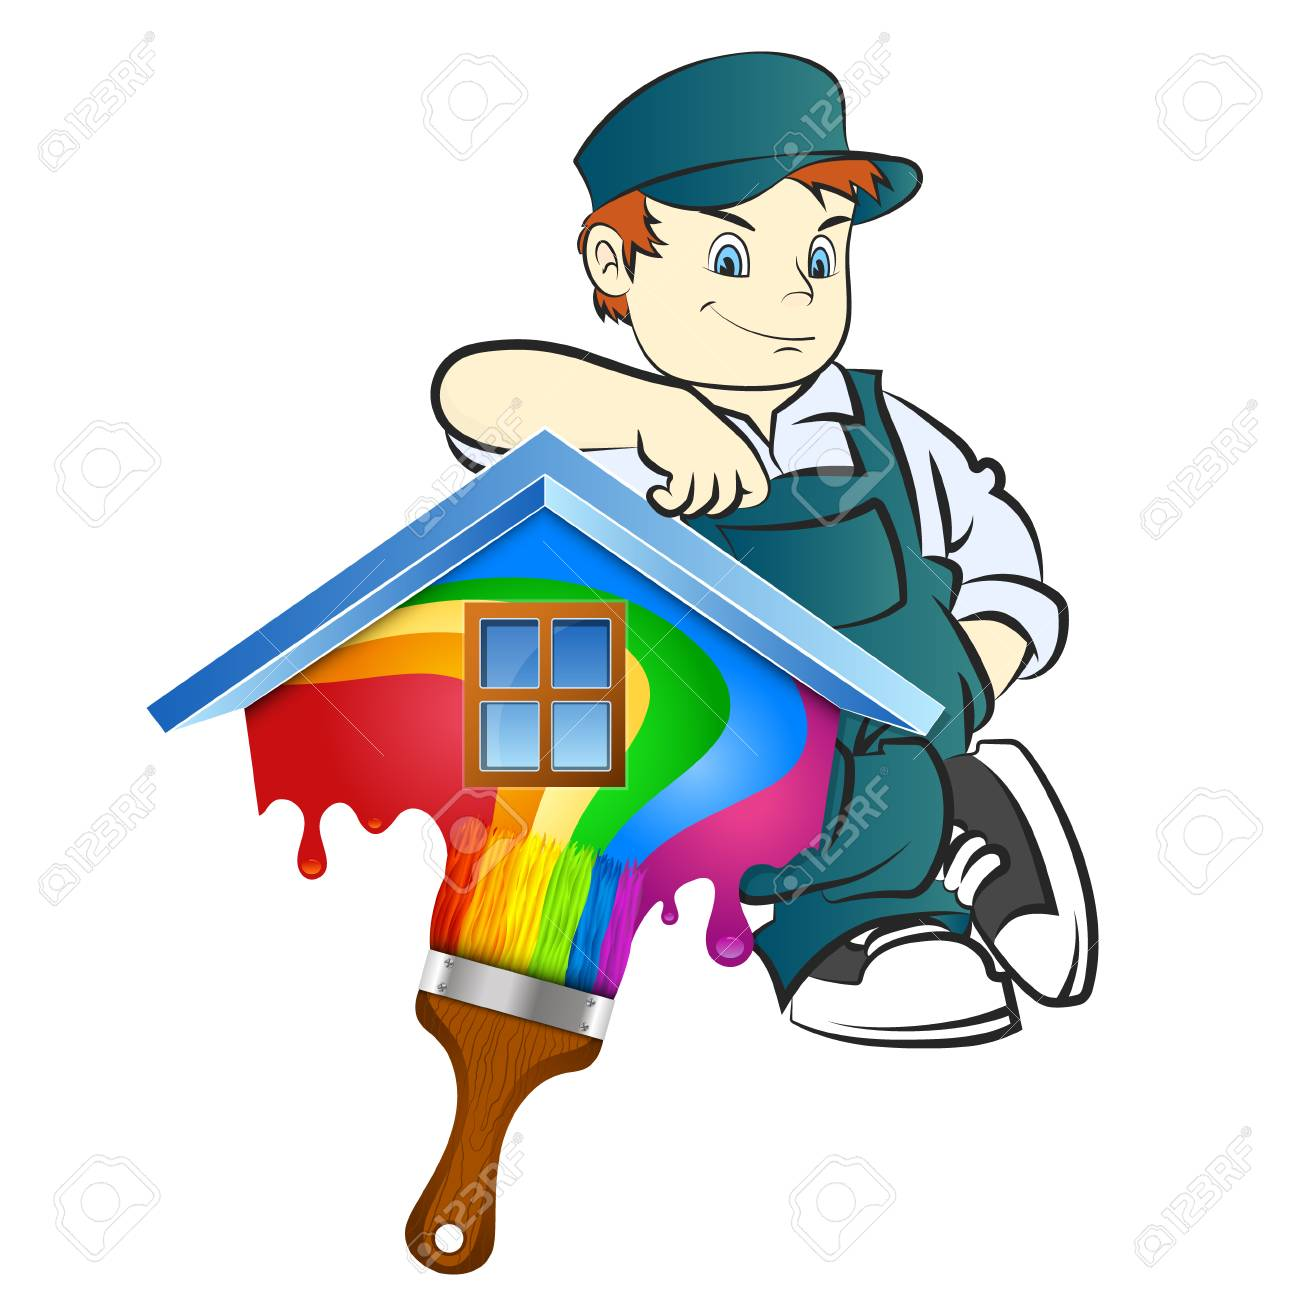 Painter with brush for painting at home illustration - 98713425